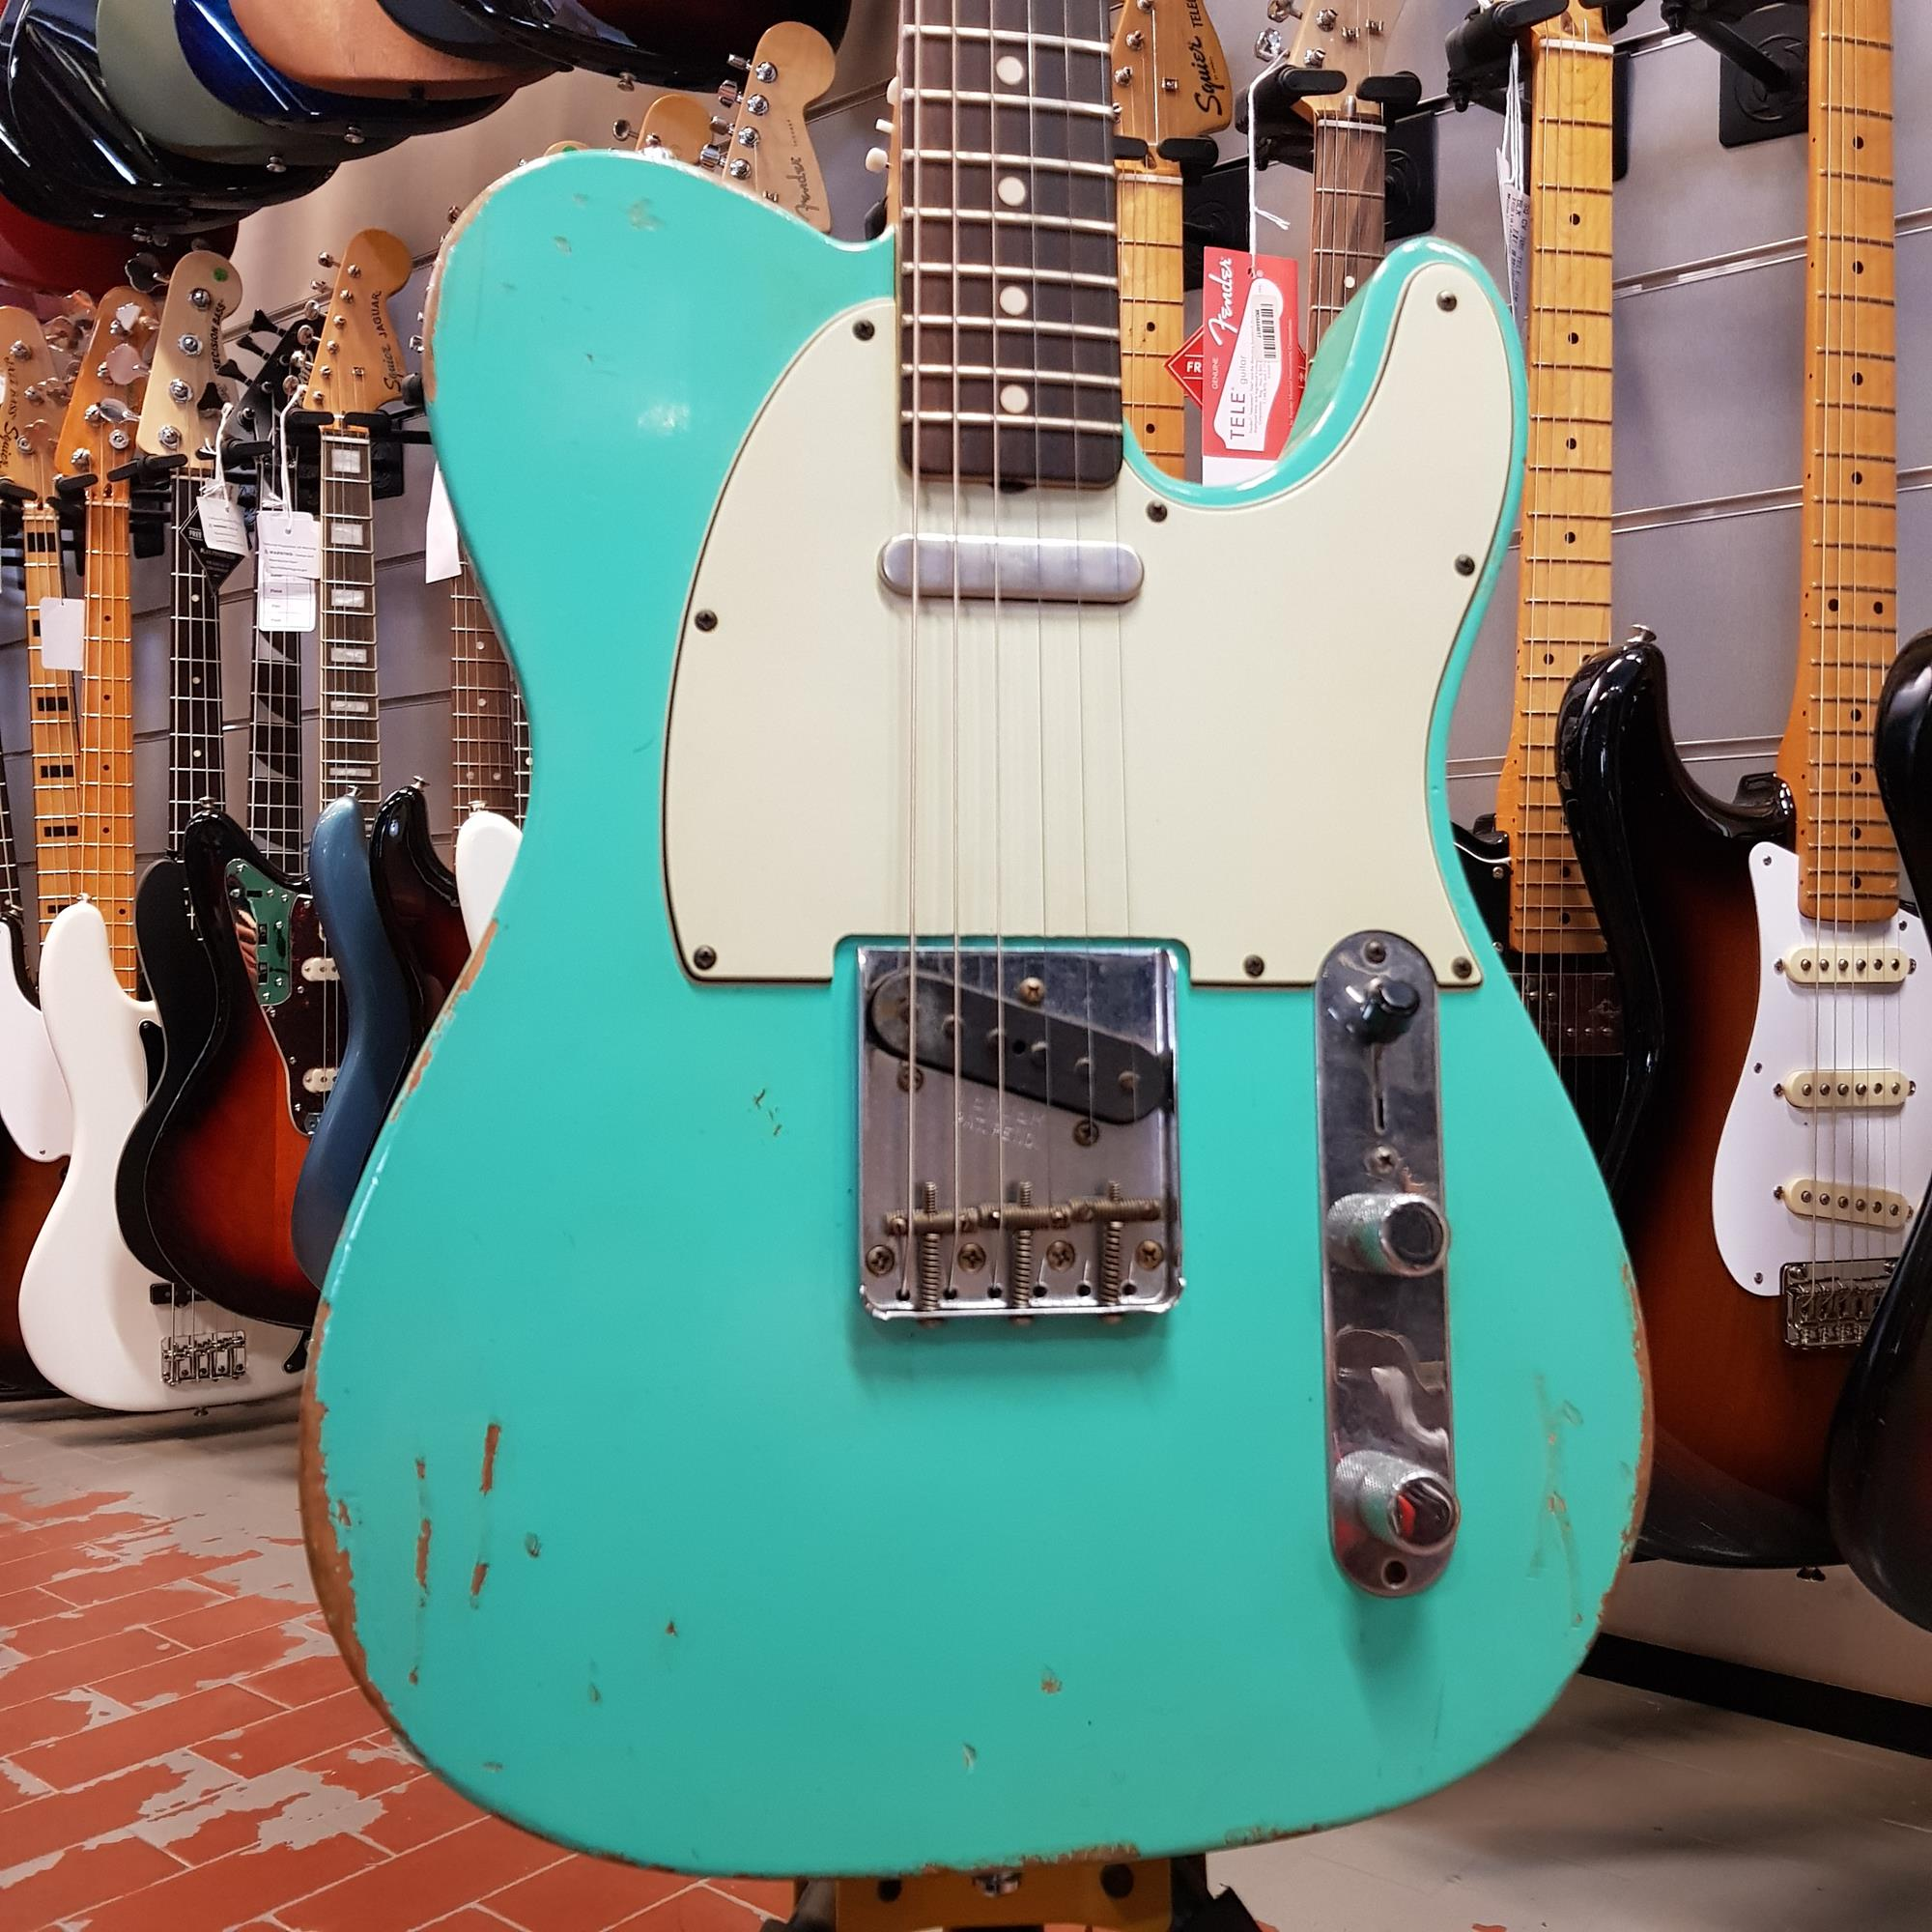 FENDER-CUSTOM-SHOP-1963-TELECASTER-RELIC-SEAFOAM-GREEN-sku-1595078512077